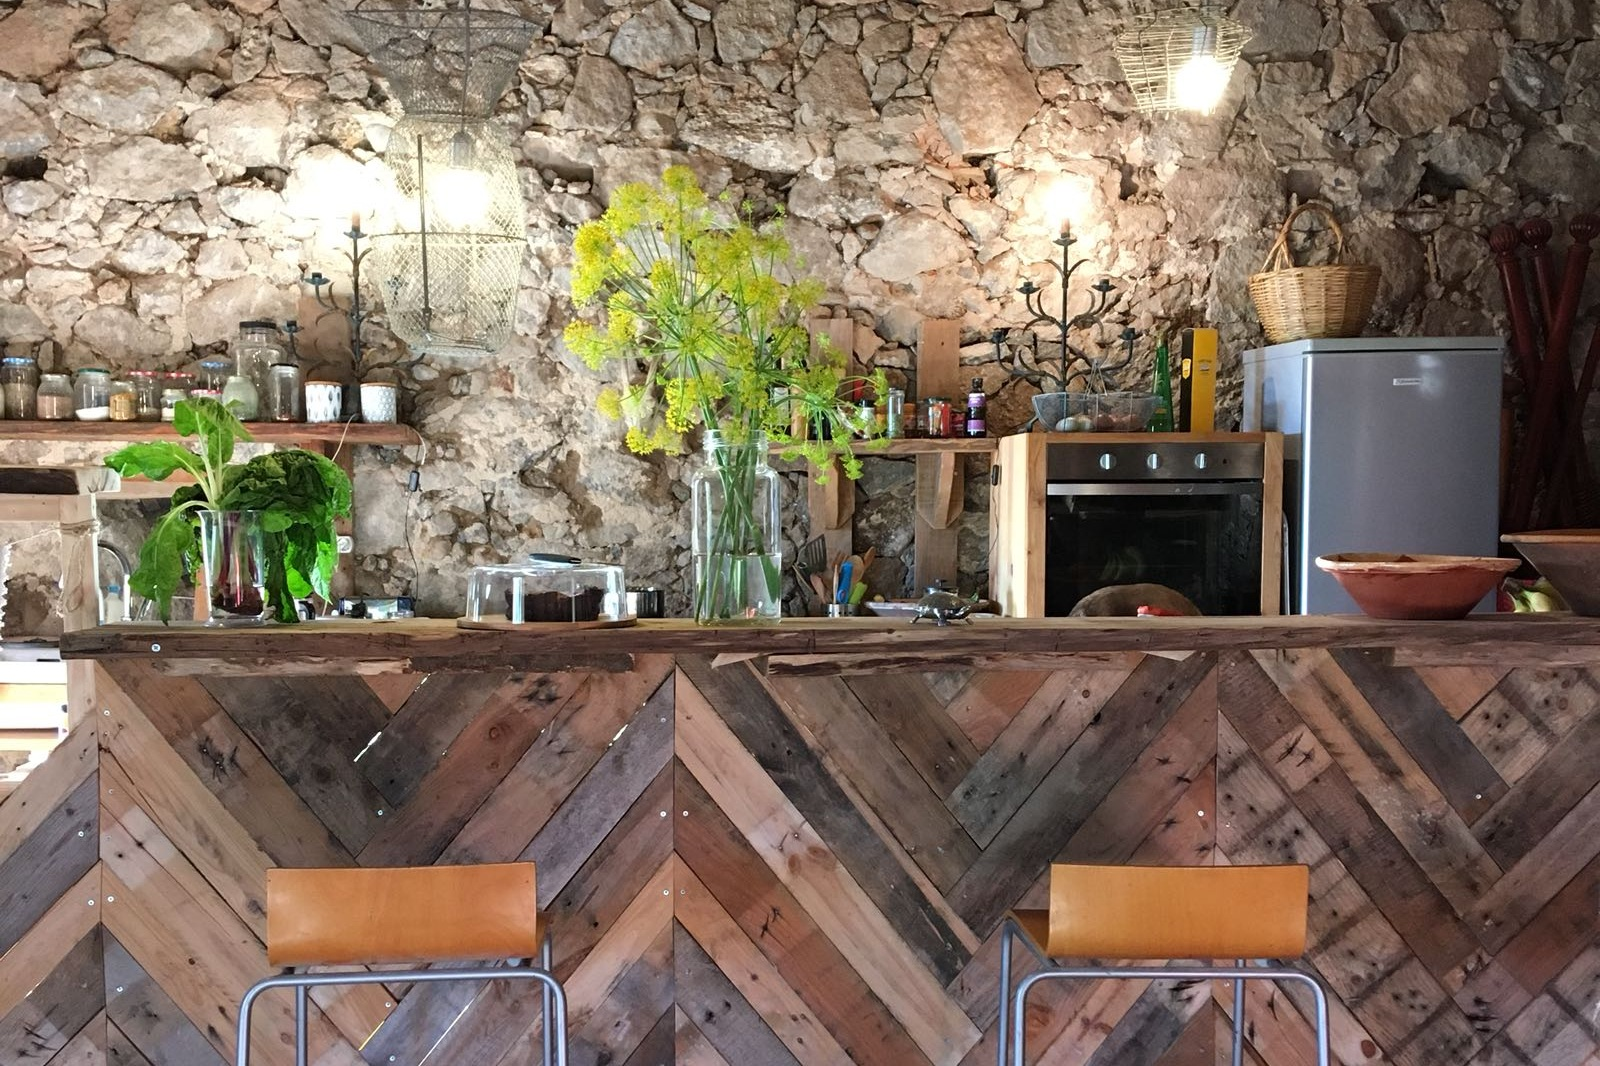 the Barn - Come and enjoy a glass of chilled wine or a beer.Hang out and talk story in the barn, our un-renovated open space gives a taste of authentic living in times gone by.